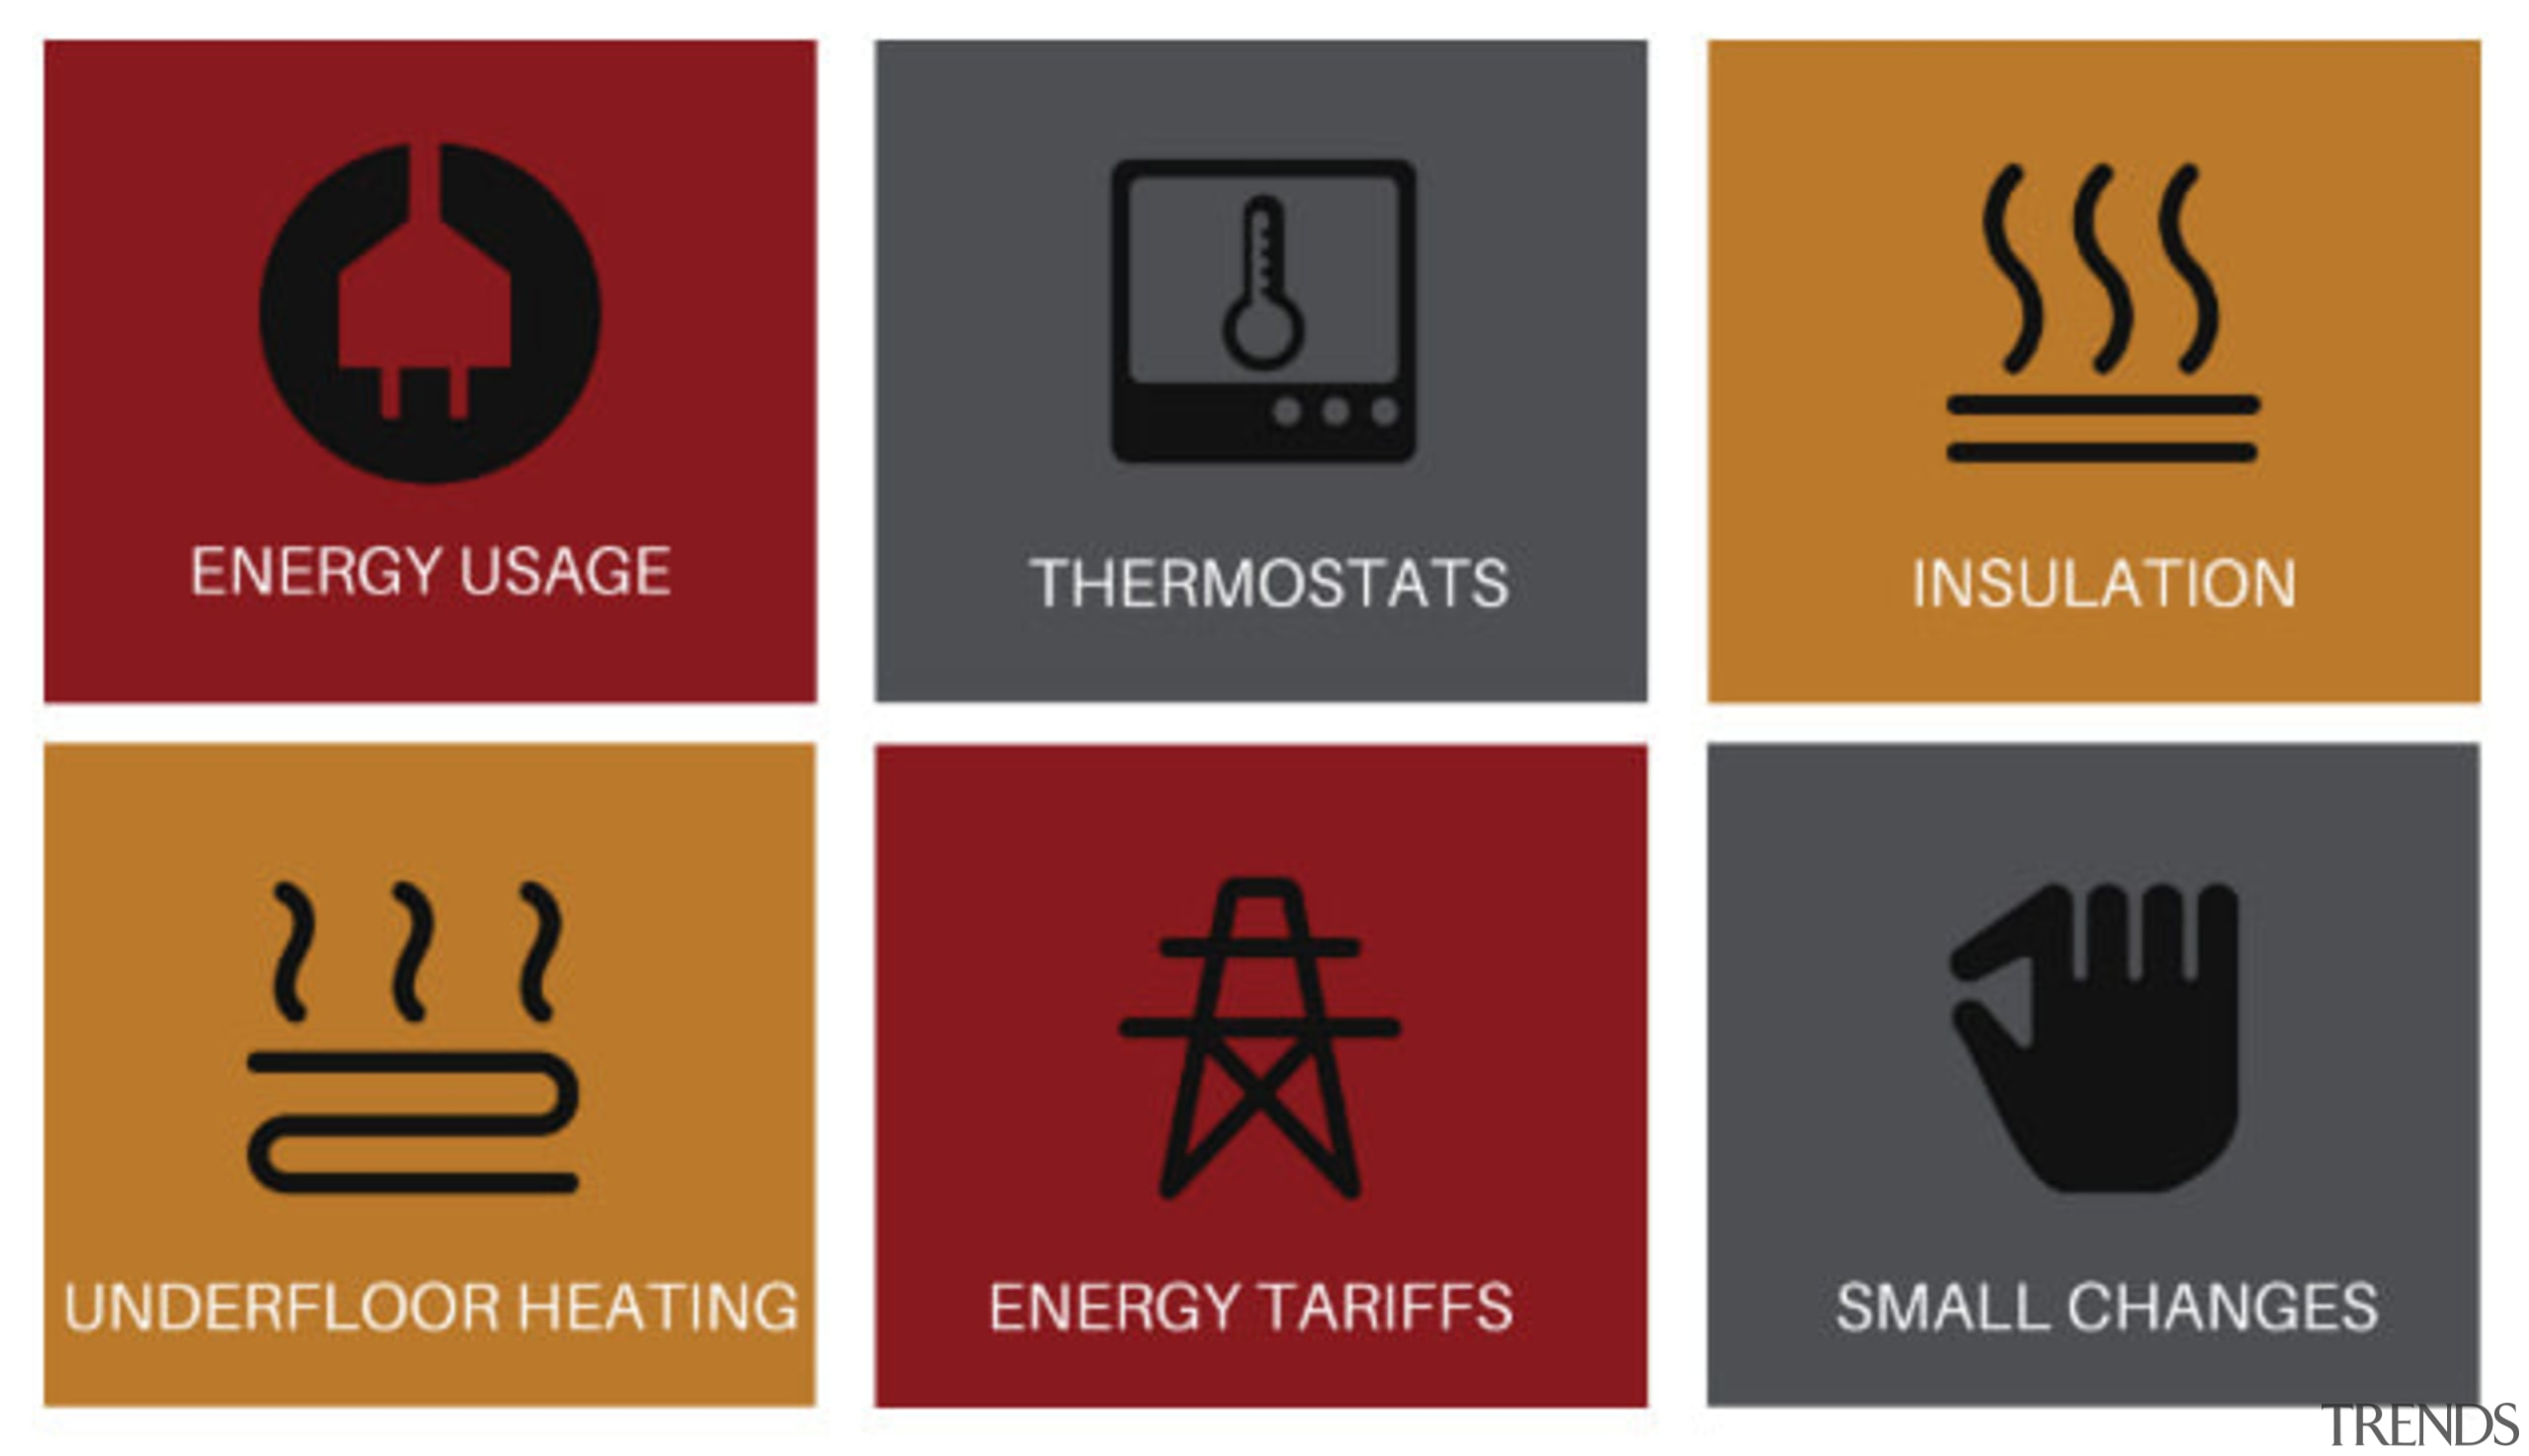 Factors to consider to reduce your power costs brand, font, line, logo, product, text, orange, gray